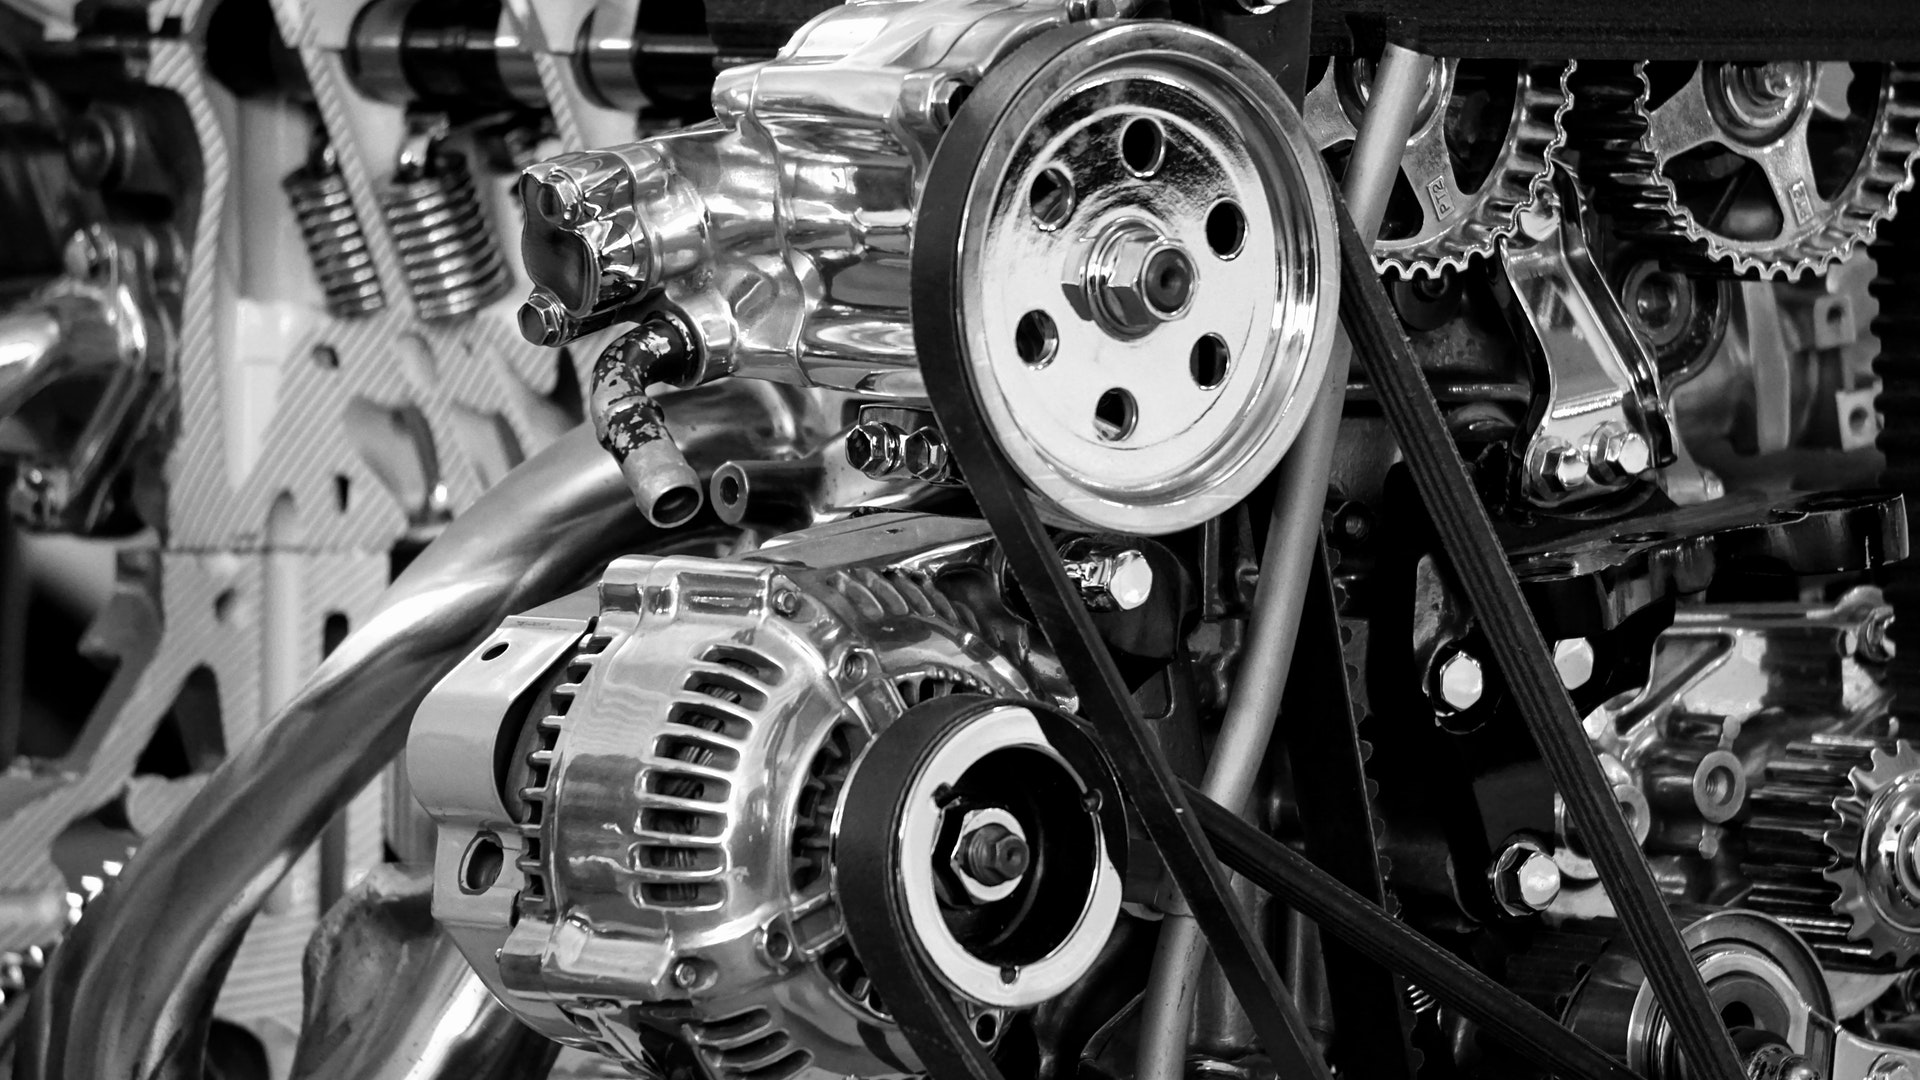 Car engine in black and white